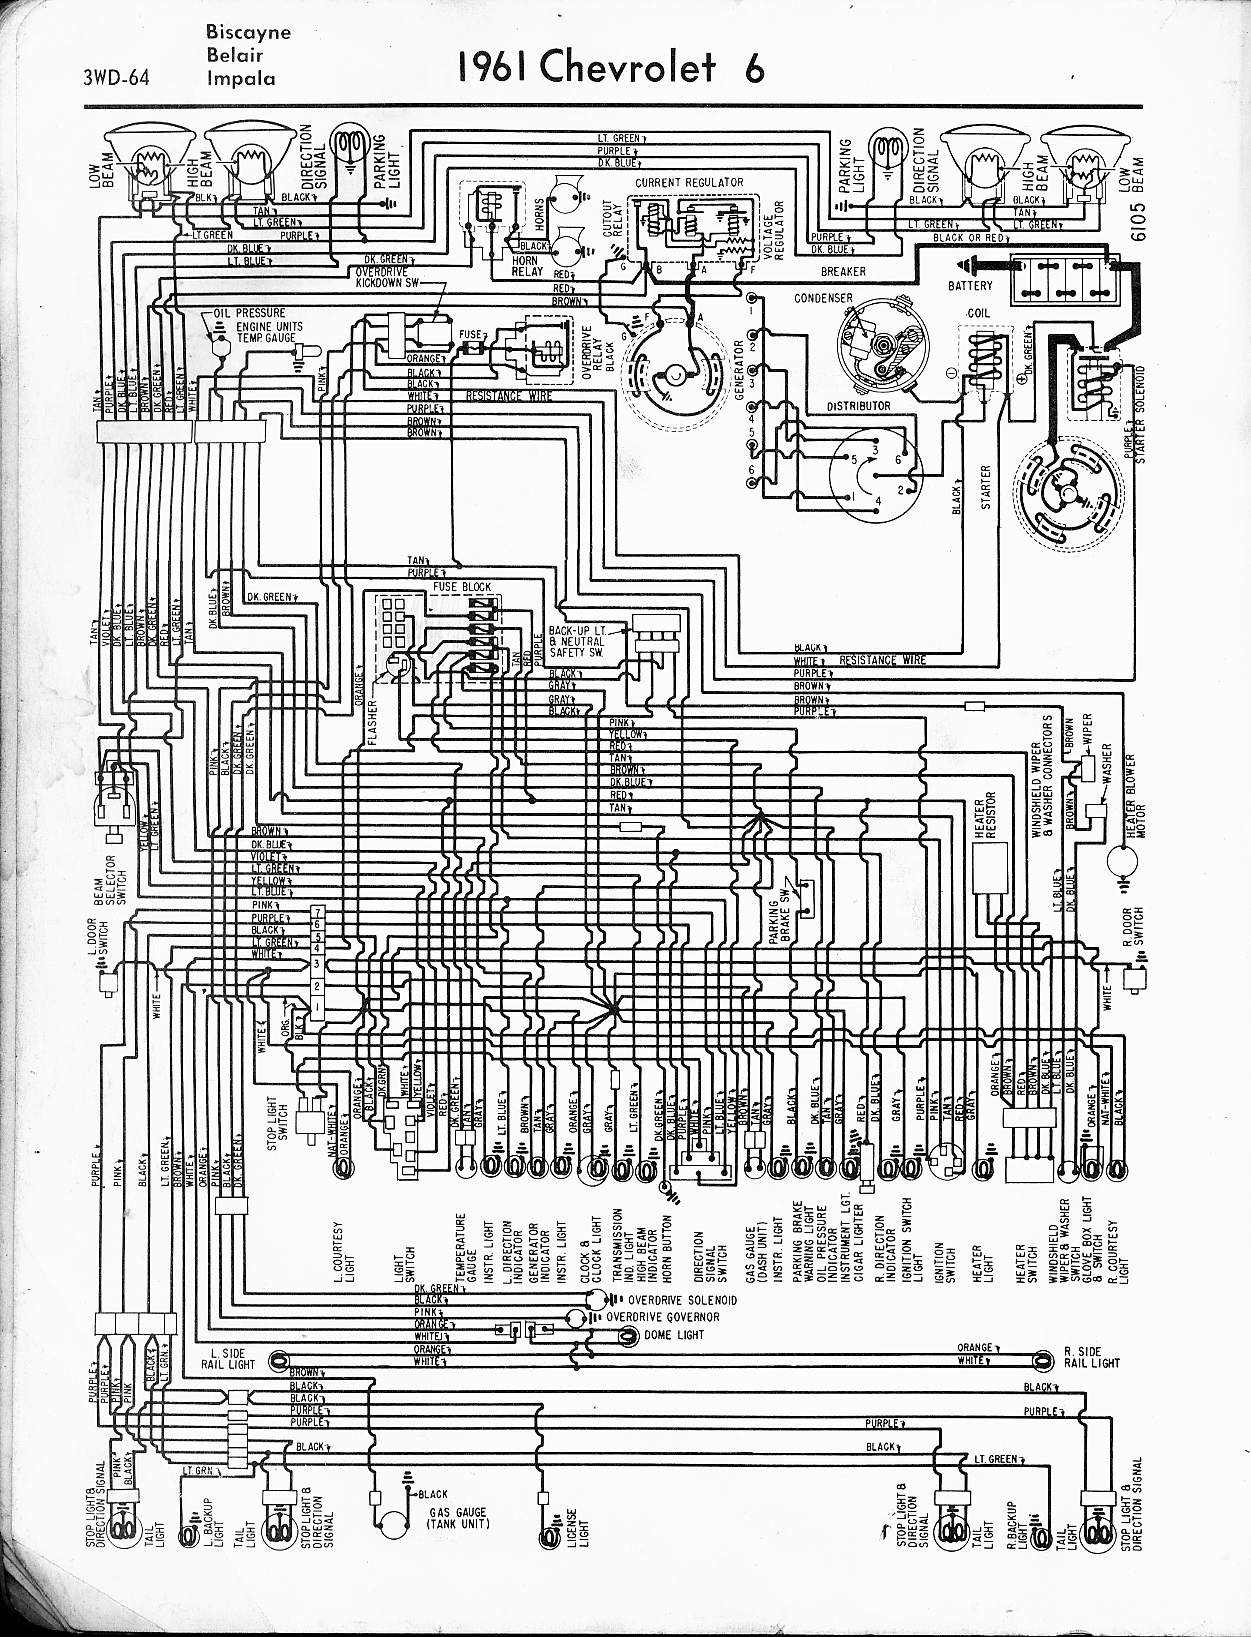 57 65 chevy wiring diagrams Wiring Diagram for 1967 Chevy Impala 1961 6 cyl biscayne, belair, impala